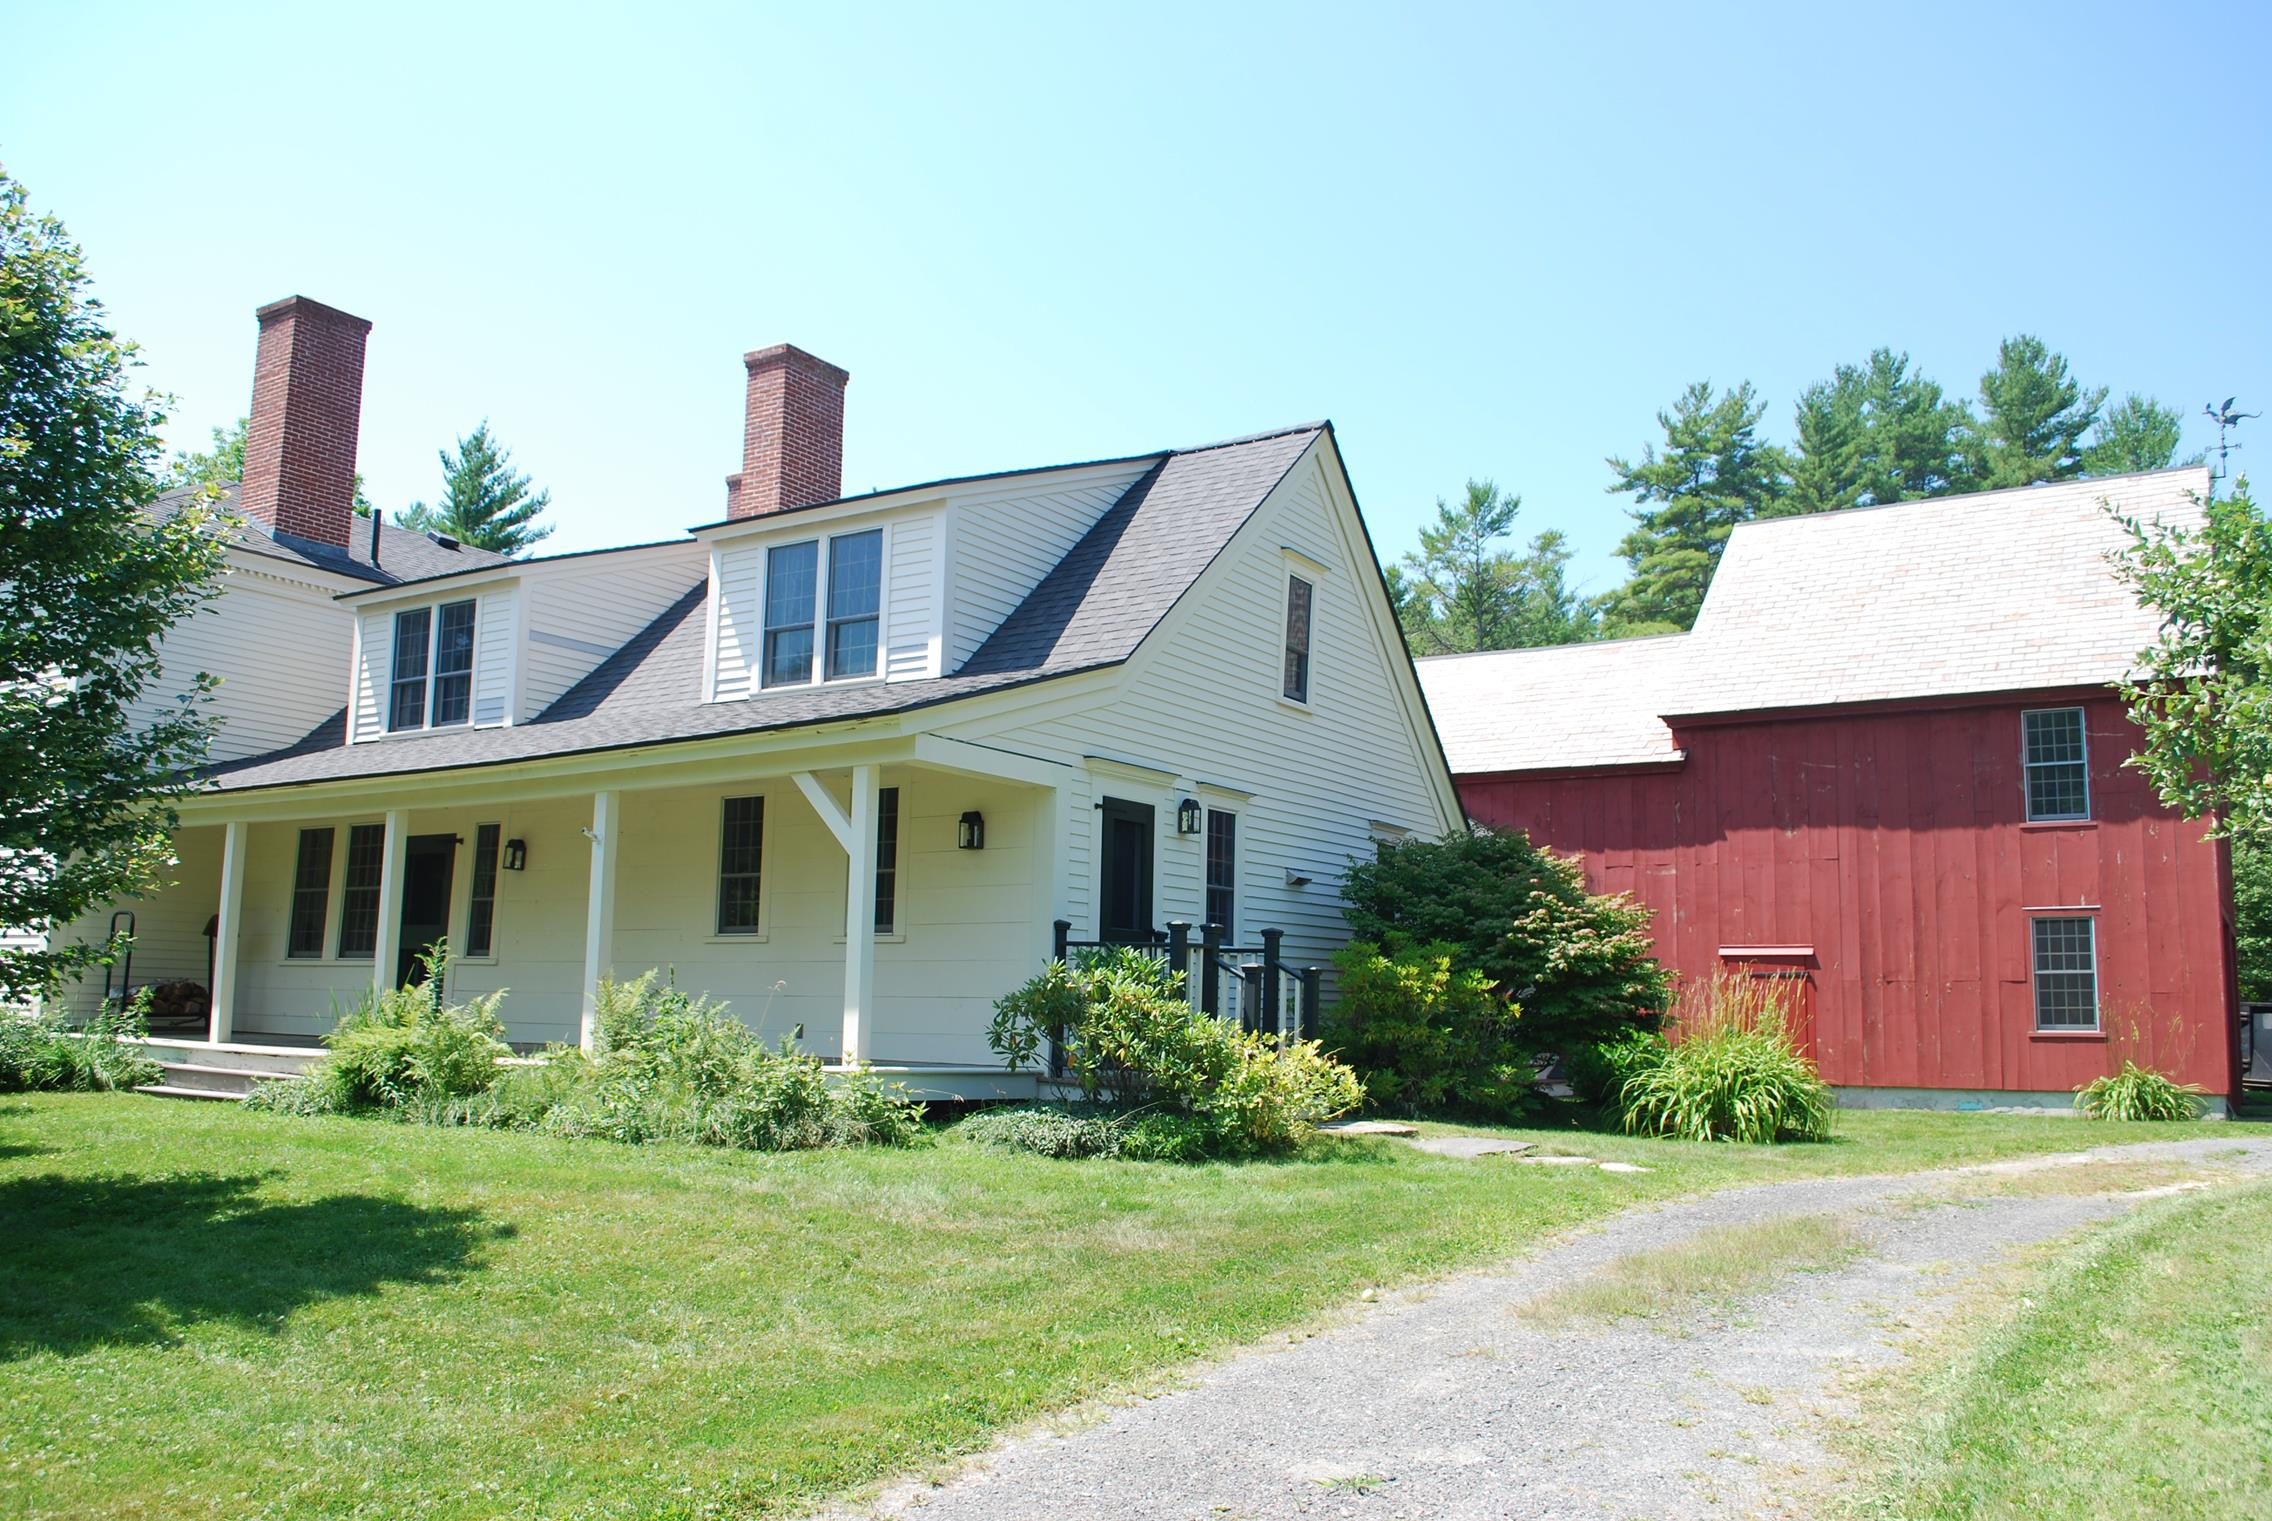 218 Homestead Rd, Alstead, NH 03602